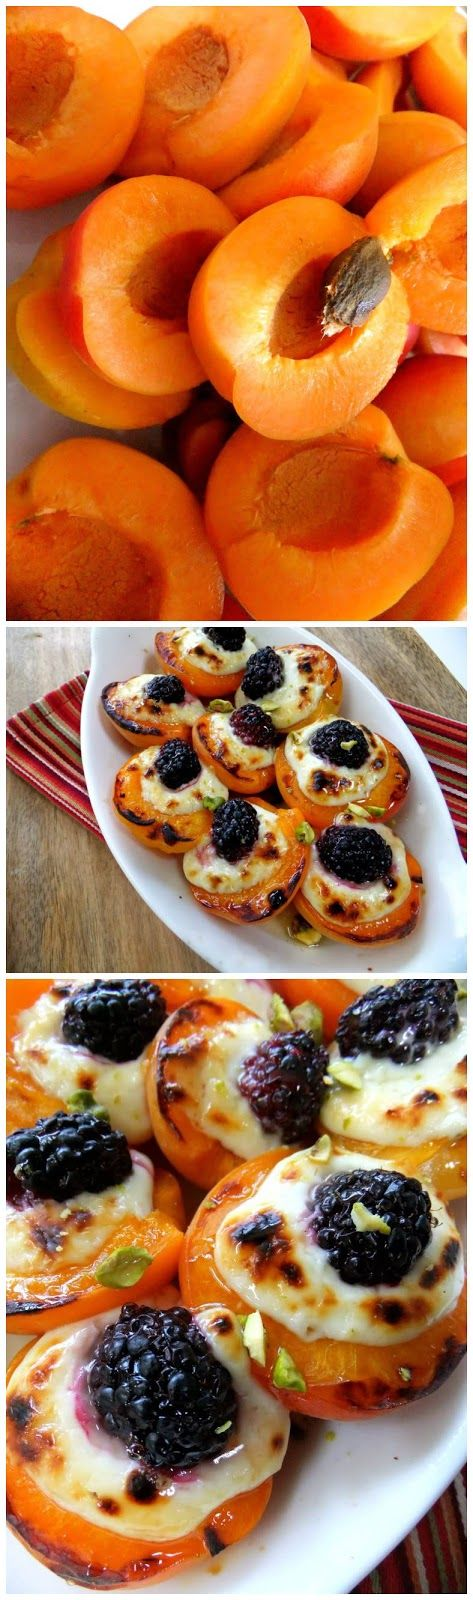 Roasted Apricots, with Mascarpone and Blackberry Drizzled with Honey by prouditaliancook via recipefavorite #Apricots